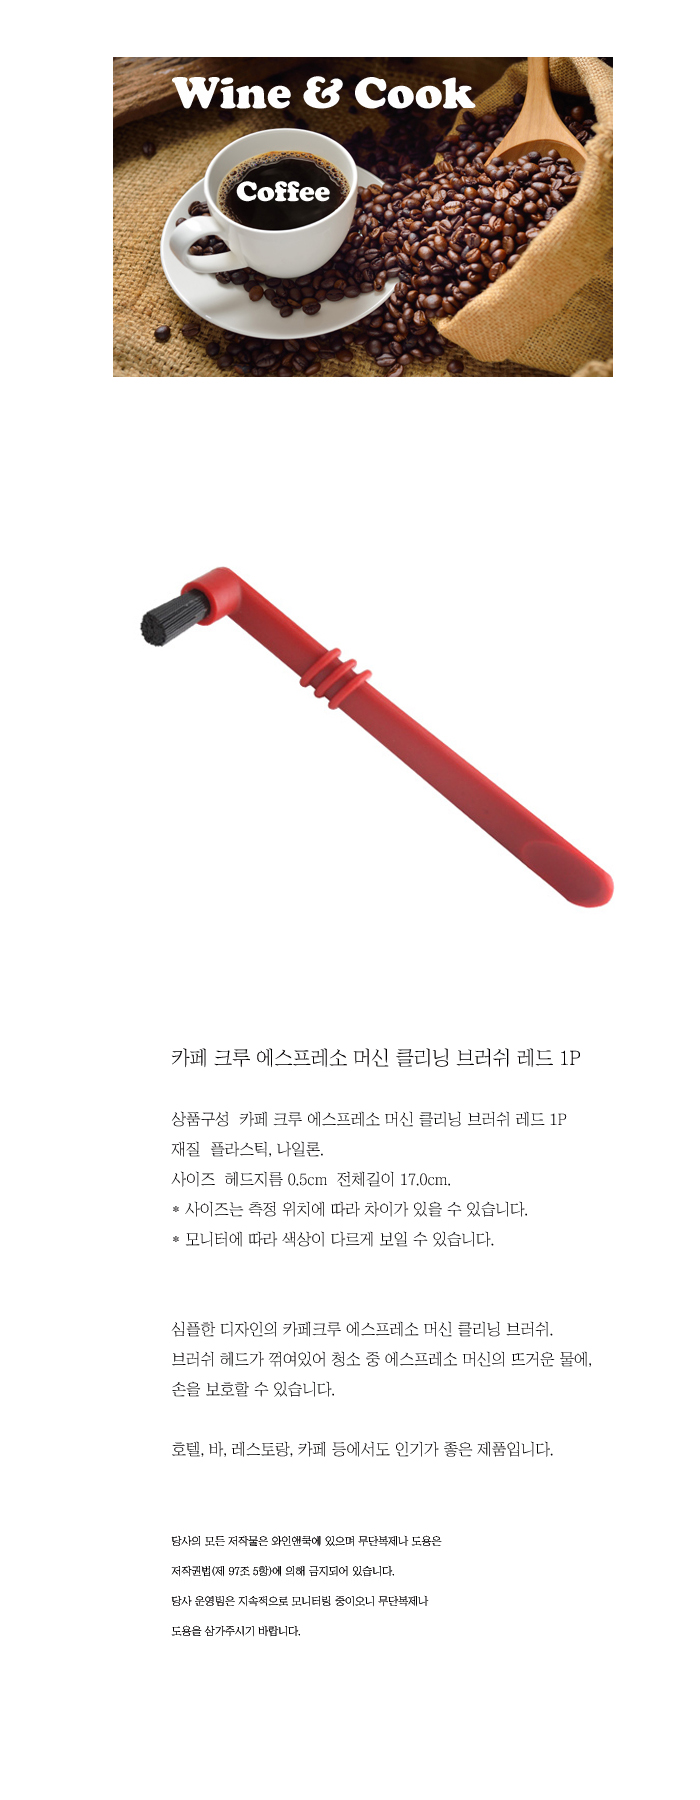 [ WINEQOK ] Cafe Crew Espresso Machine Cleaning Brush Red 1P